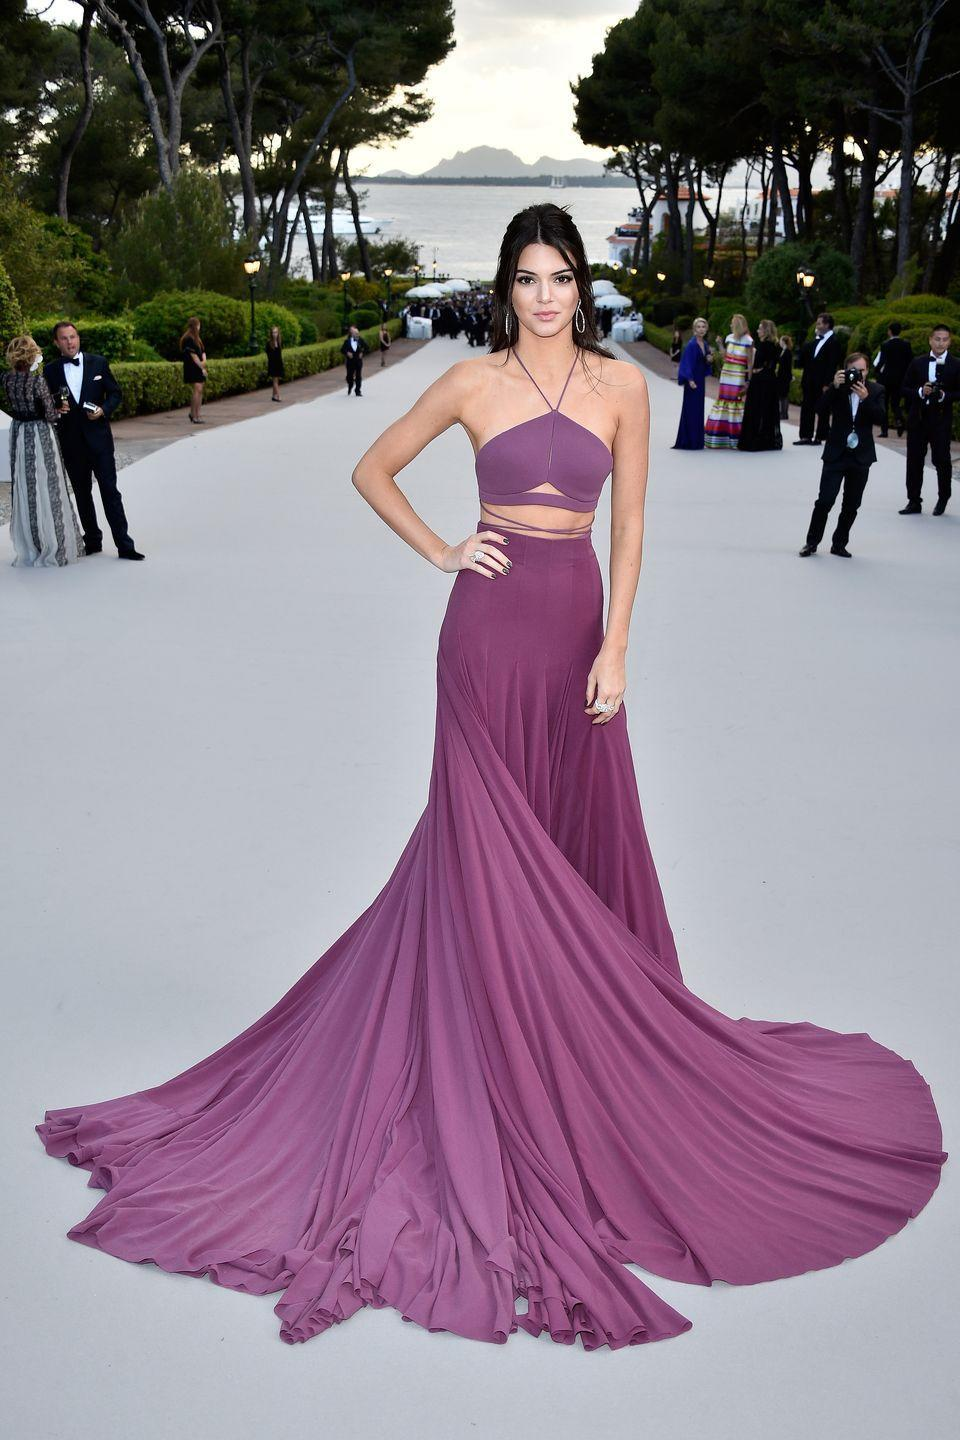 <p>When Kendall Jenner wore this purple evening gown to amfAR's 22nd Cinema Against AIDS Gala in France, she gave us all the Princess Jasmine feels.</p>